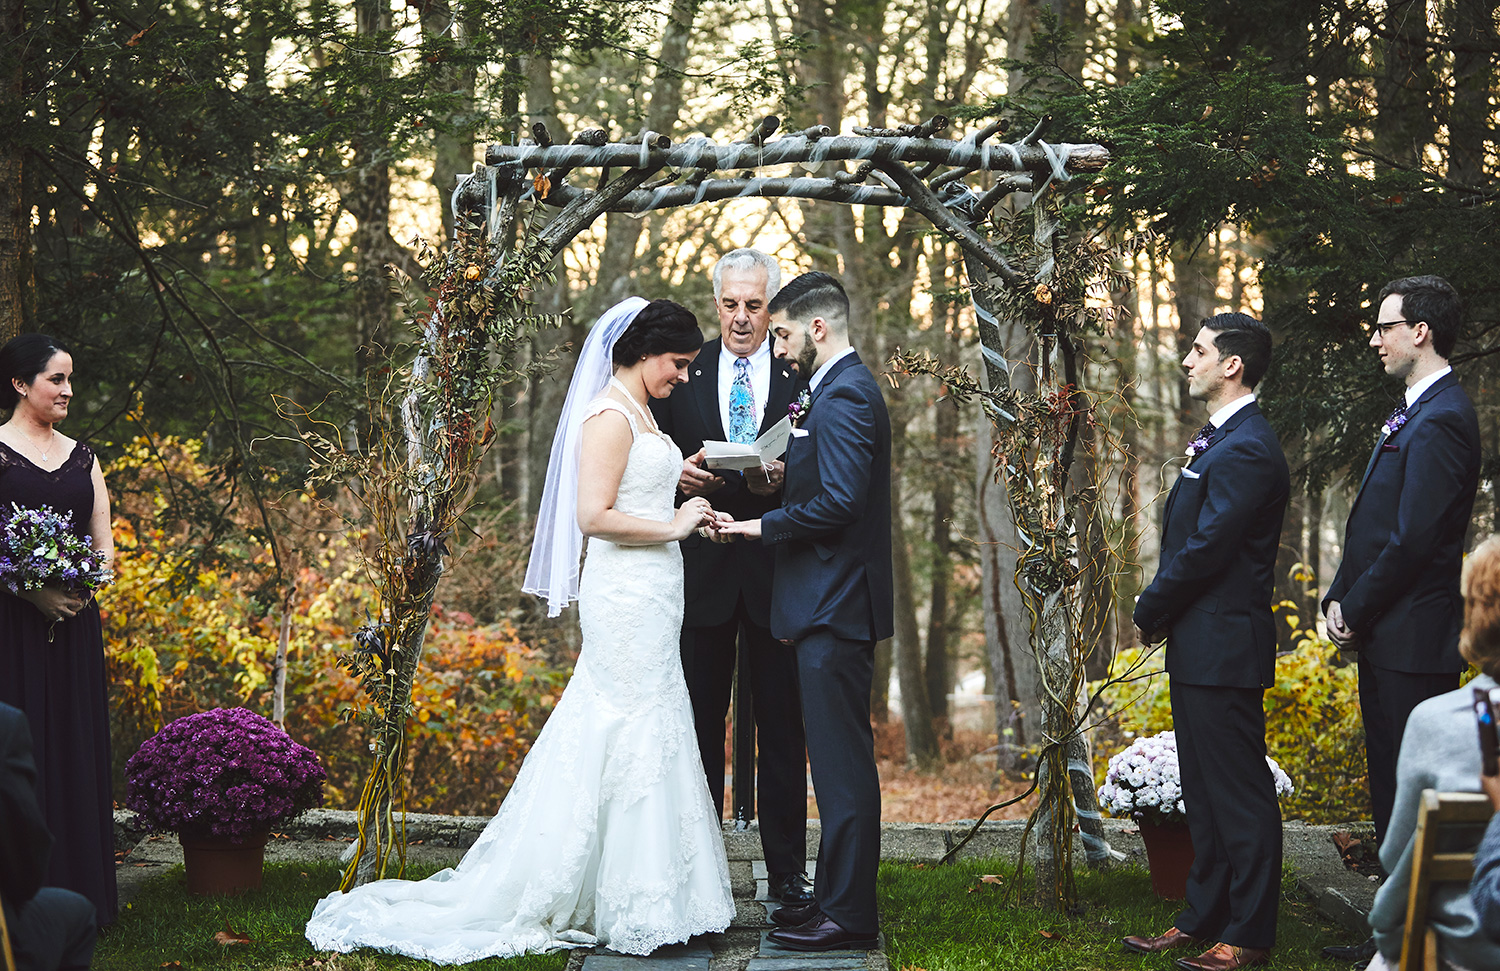 161119_ArrowParkLake&LodgeWedding_By_BriJohnsonWeddings_0112.jpg